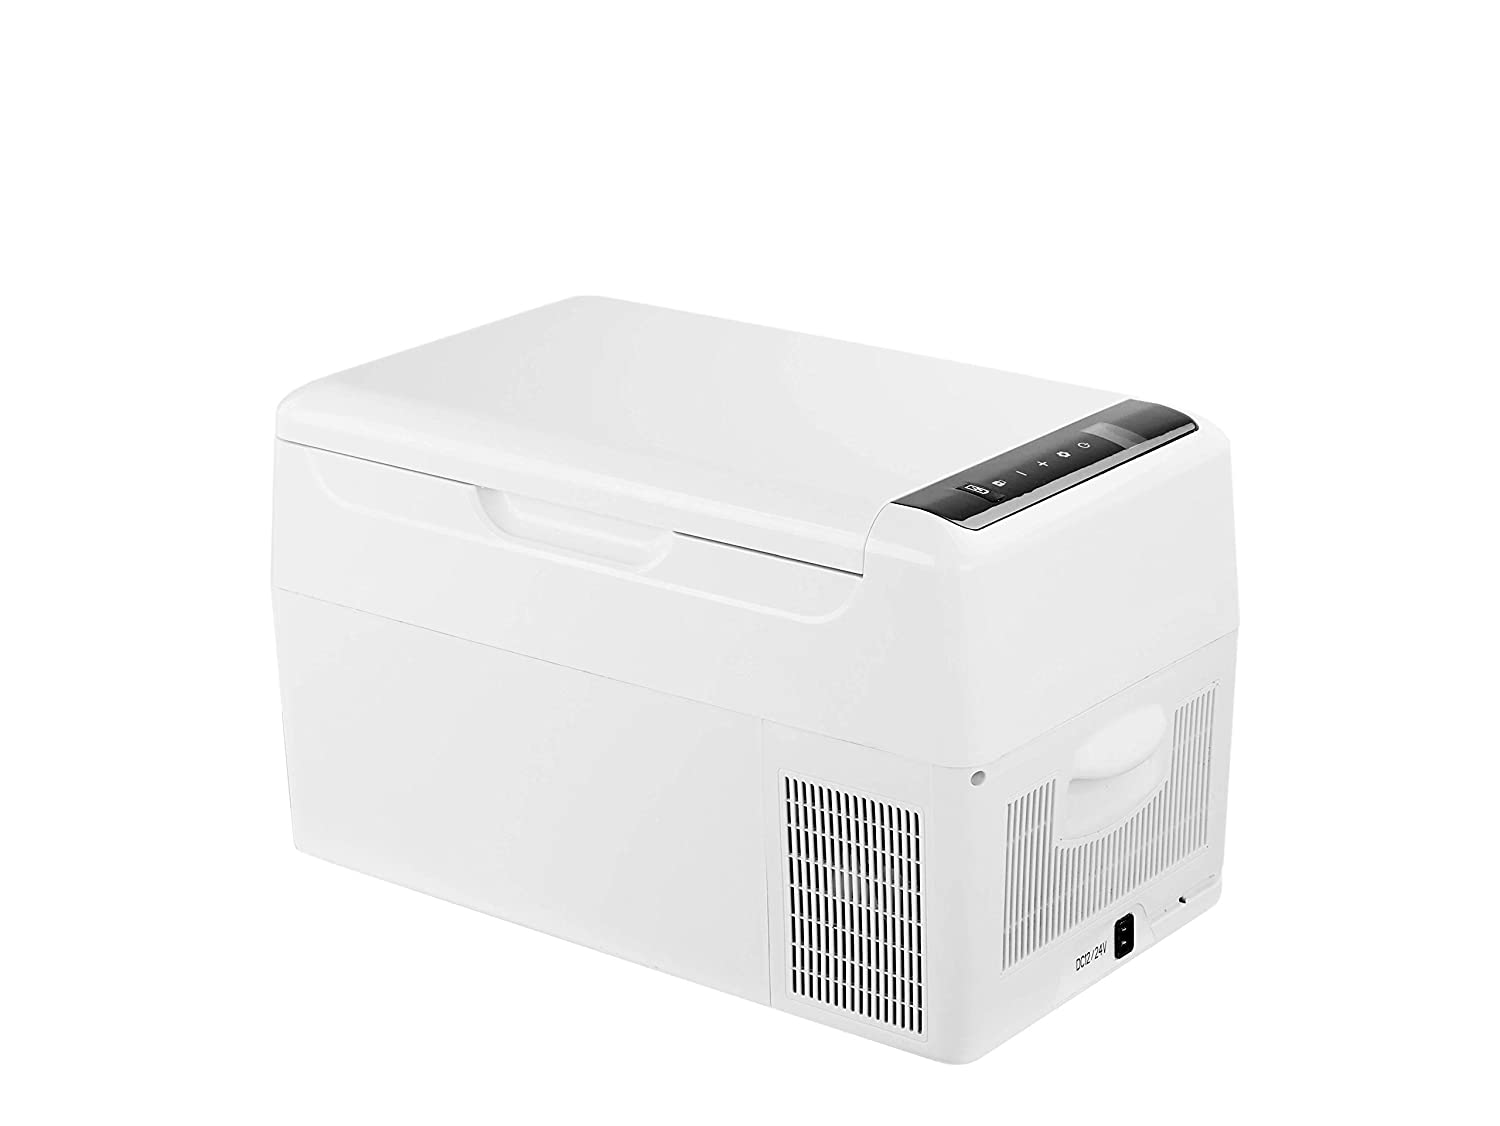 Alpicool C22 Portable Refrigerator 23 Quart(22 Liter) Vehicle, Car, Truck, RV, Boat, Mini Fridge Freezer for Driving, Travel, Fishing, Outdoor and Home use -12/24V DC and 110-240 AC with USB stocket